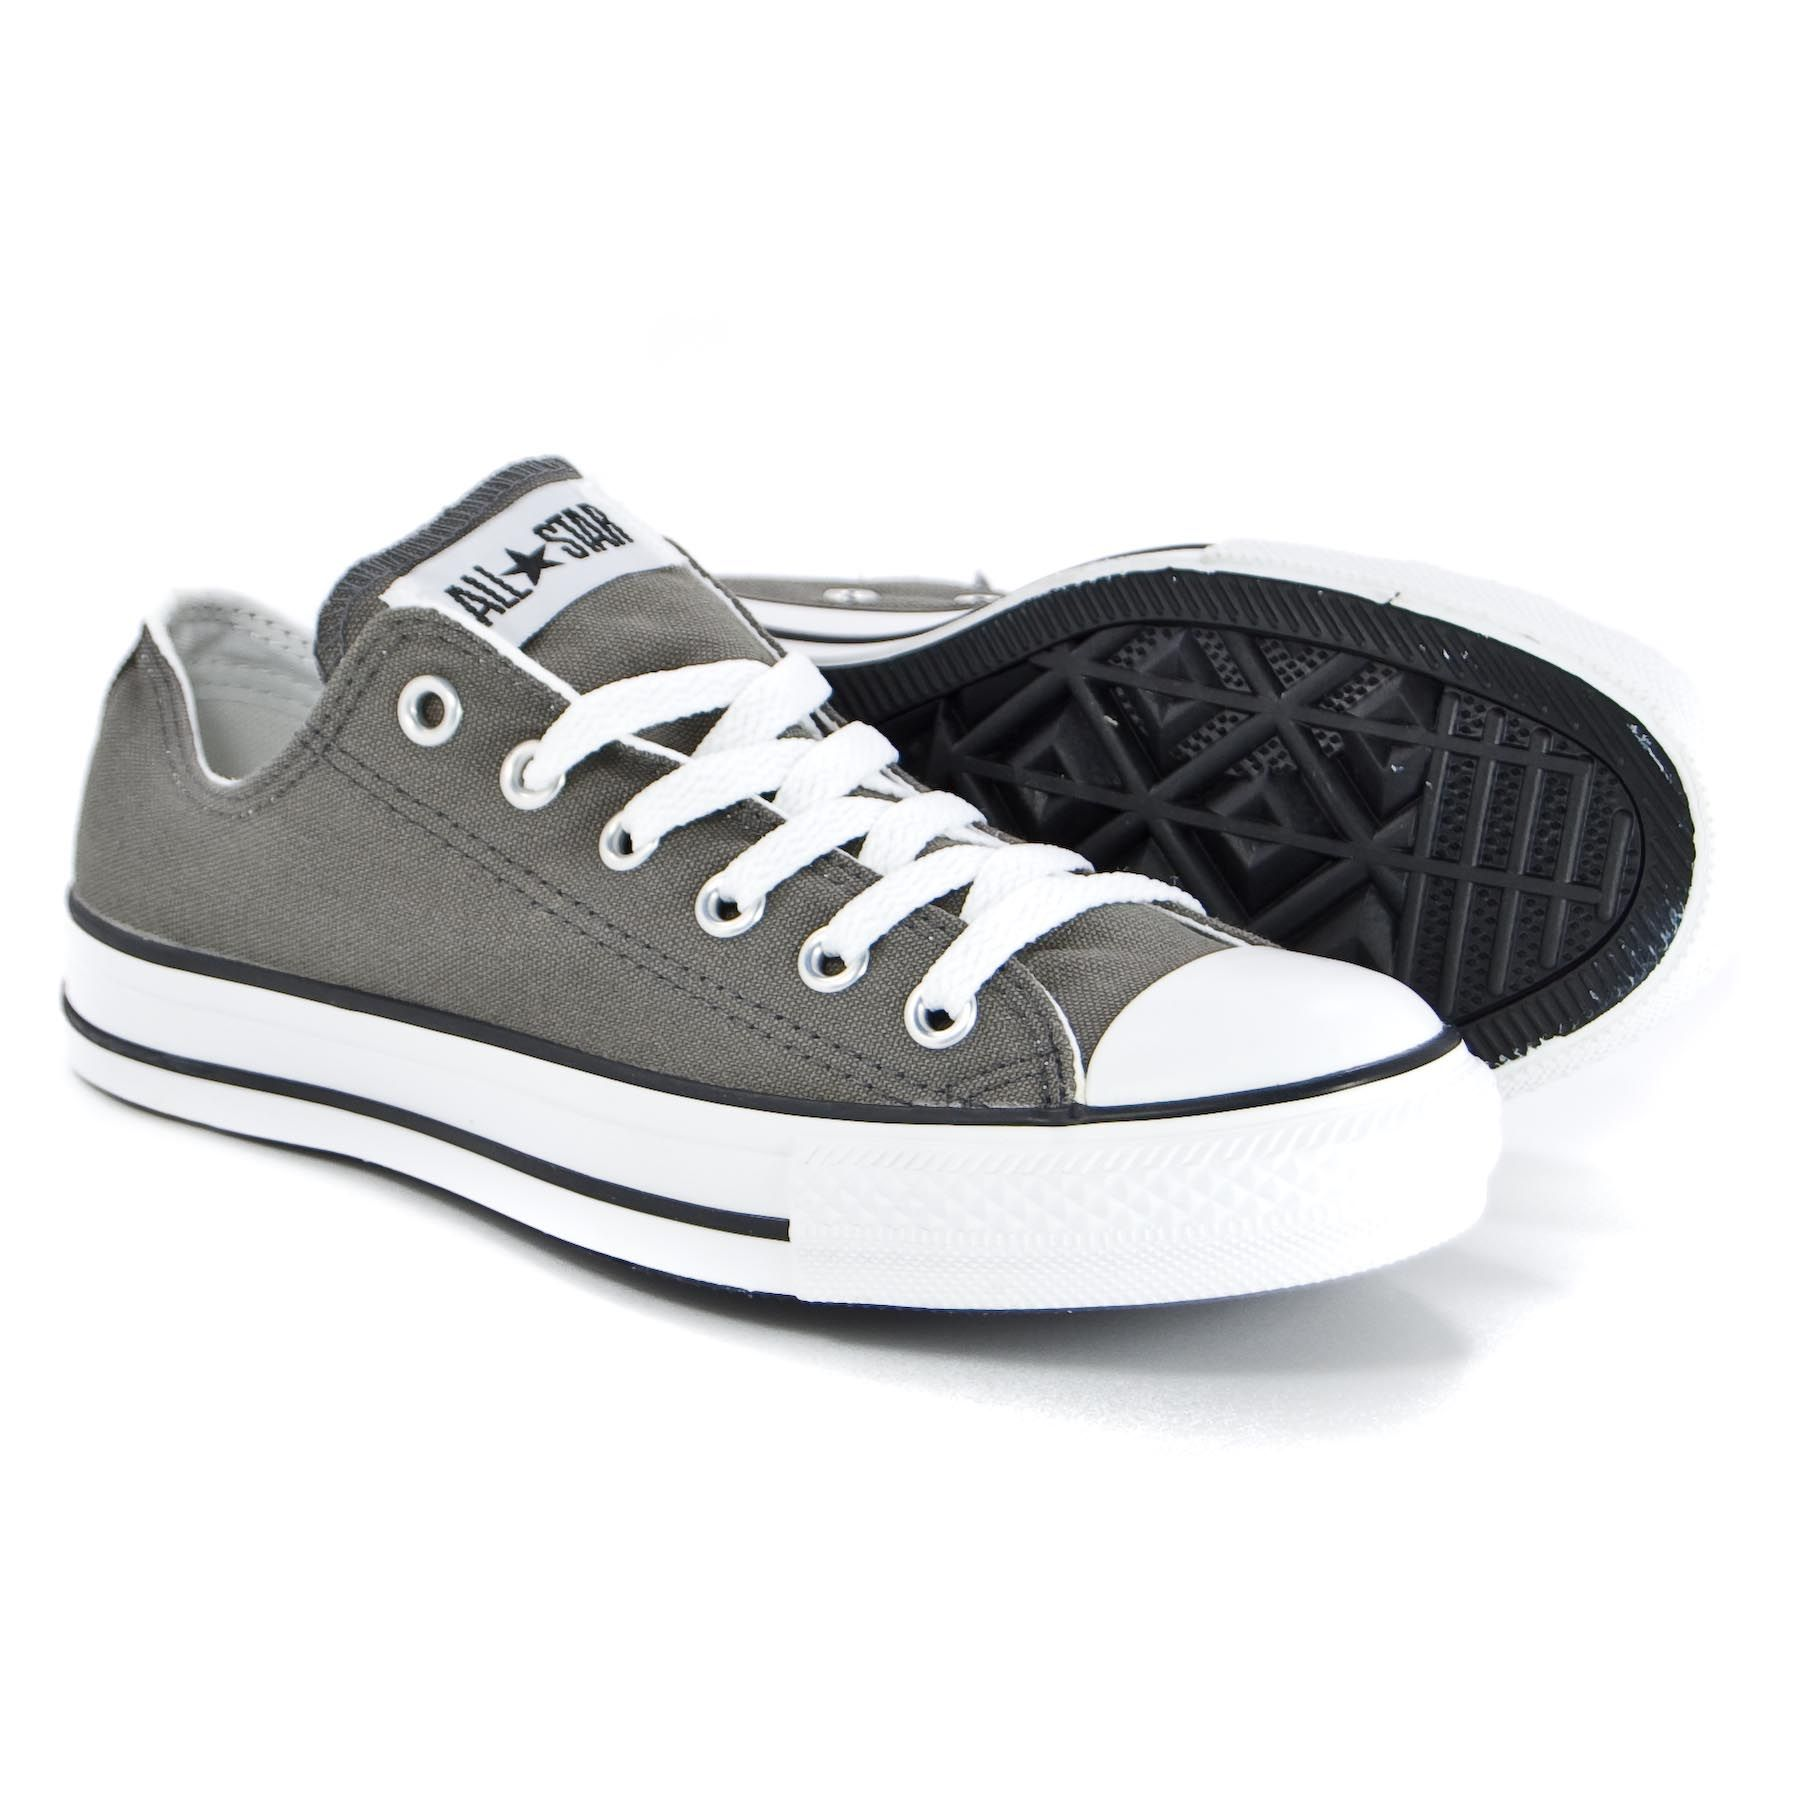 Converse.Store $19 on | Converse, Shoes, Converse shoes